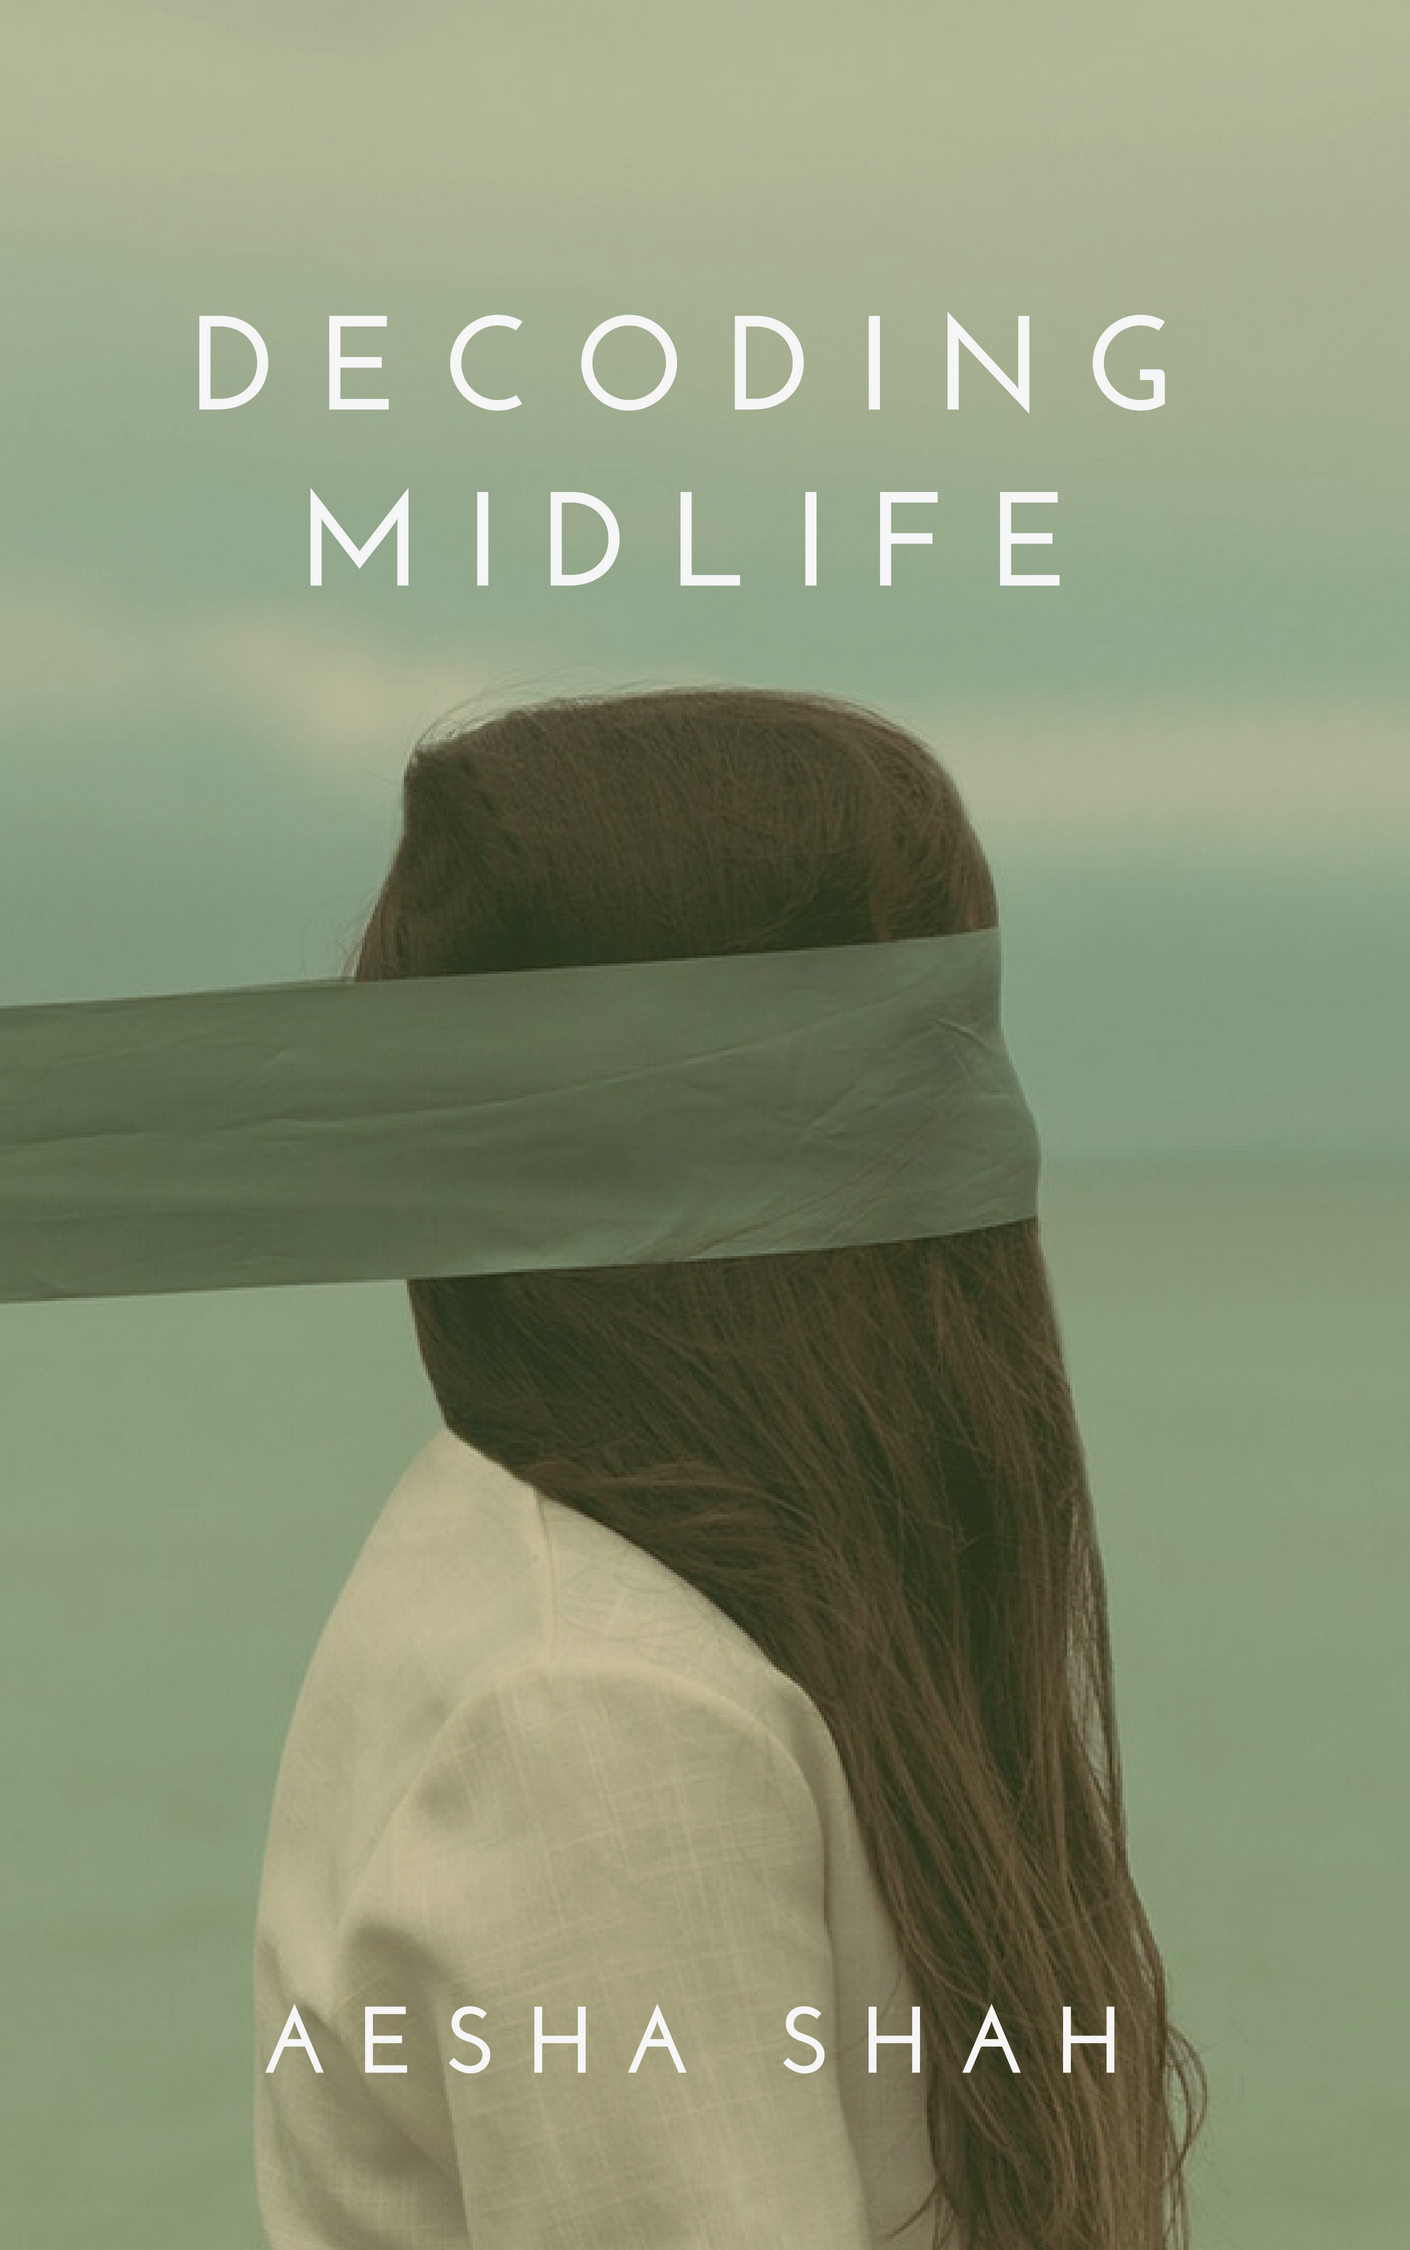 DECODING MIDLIFE